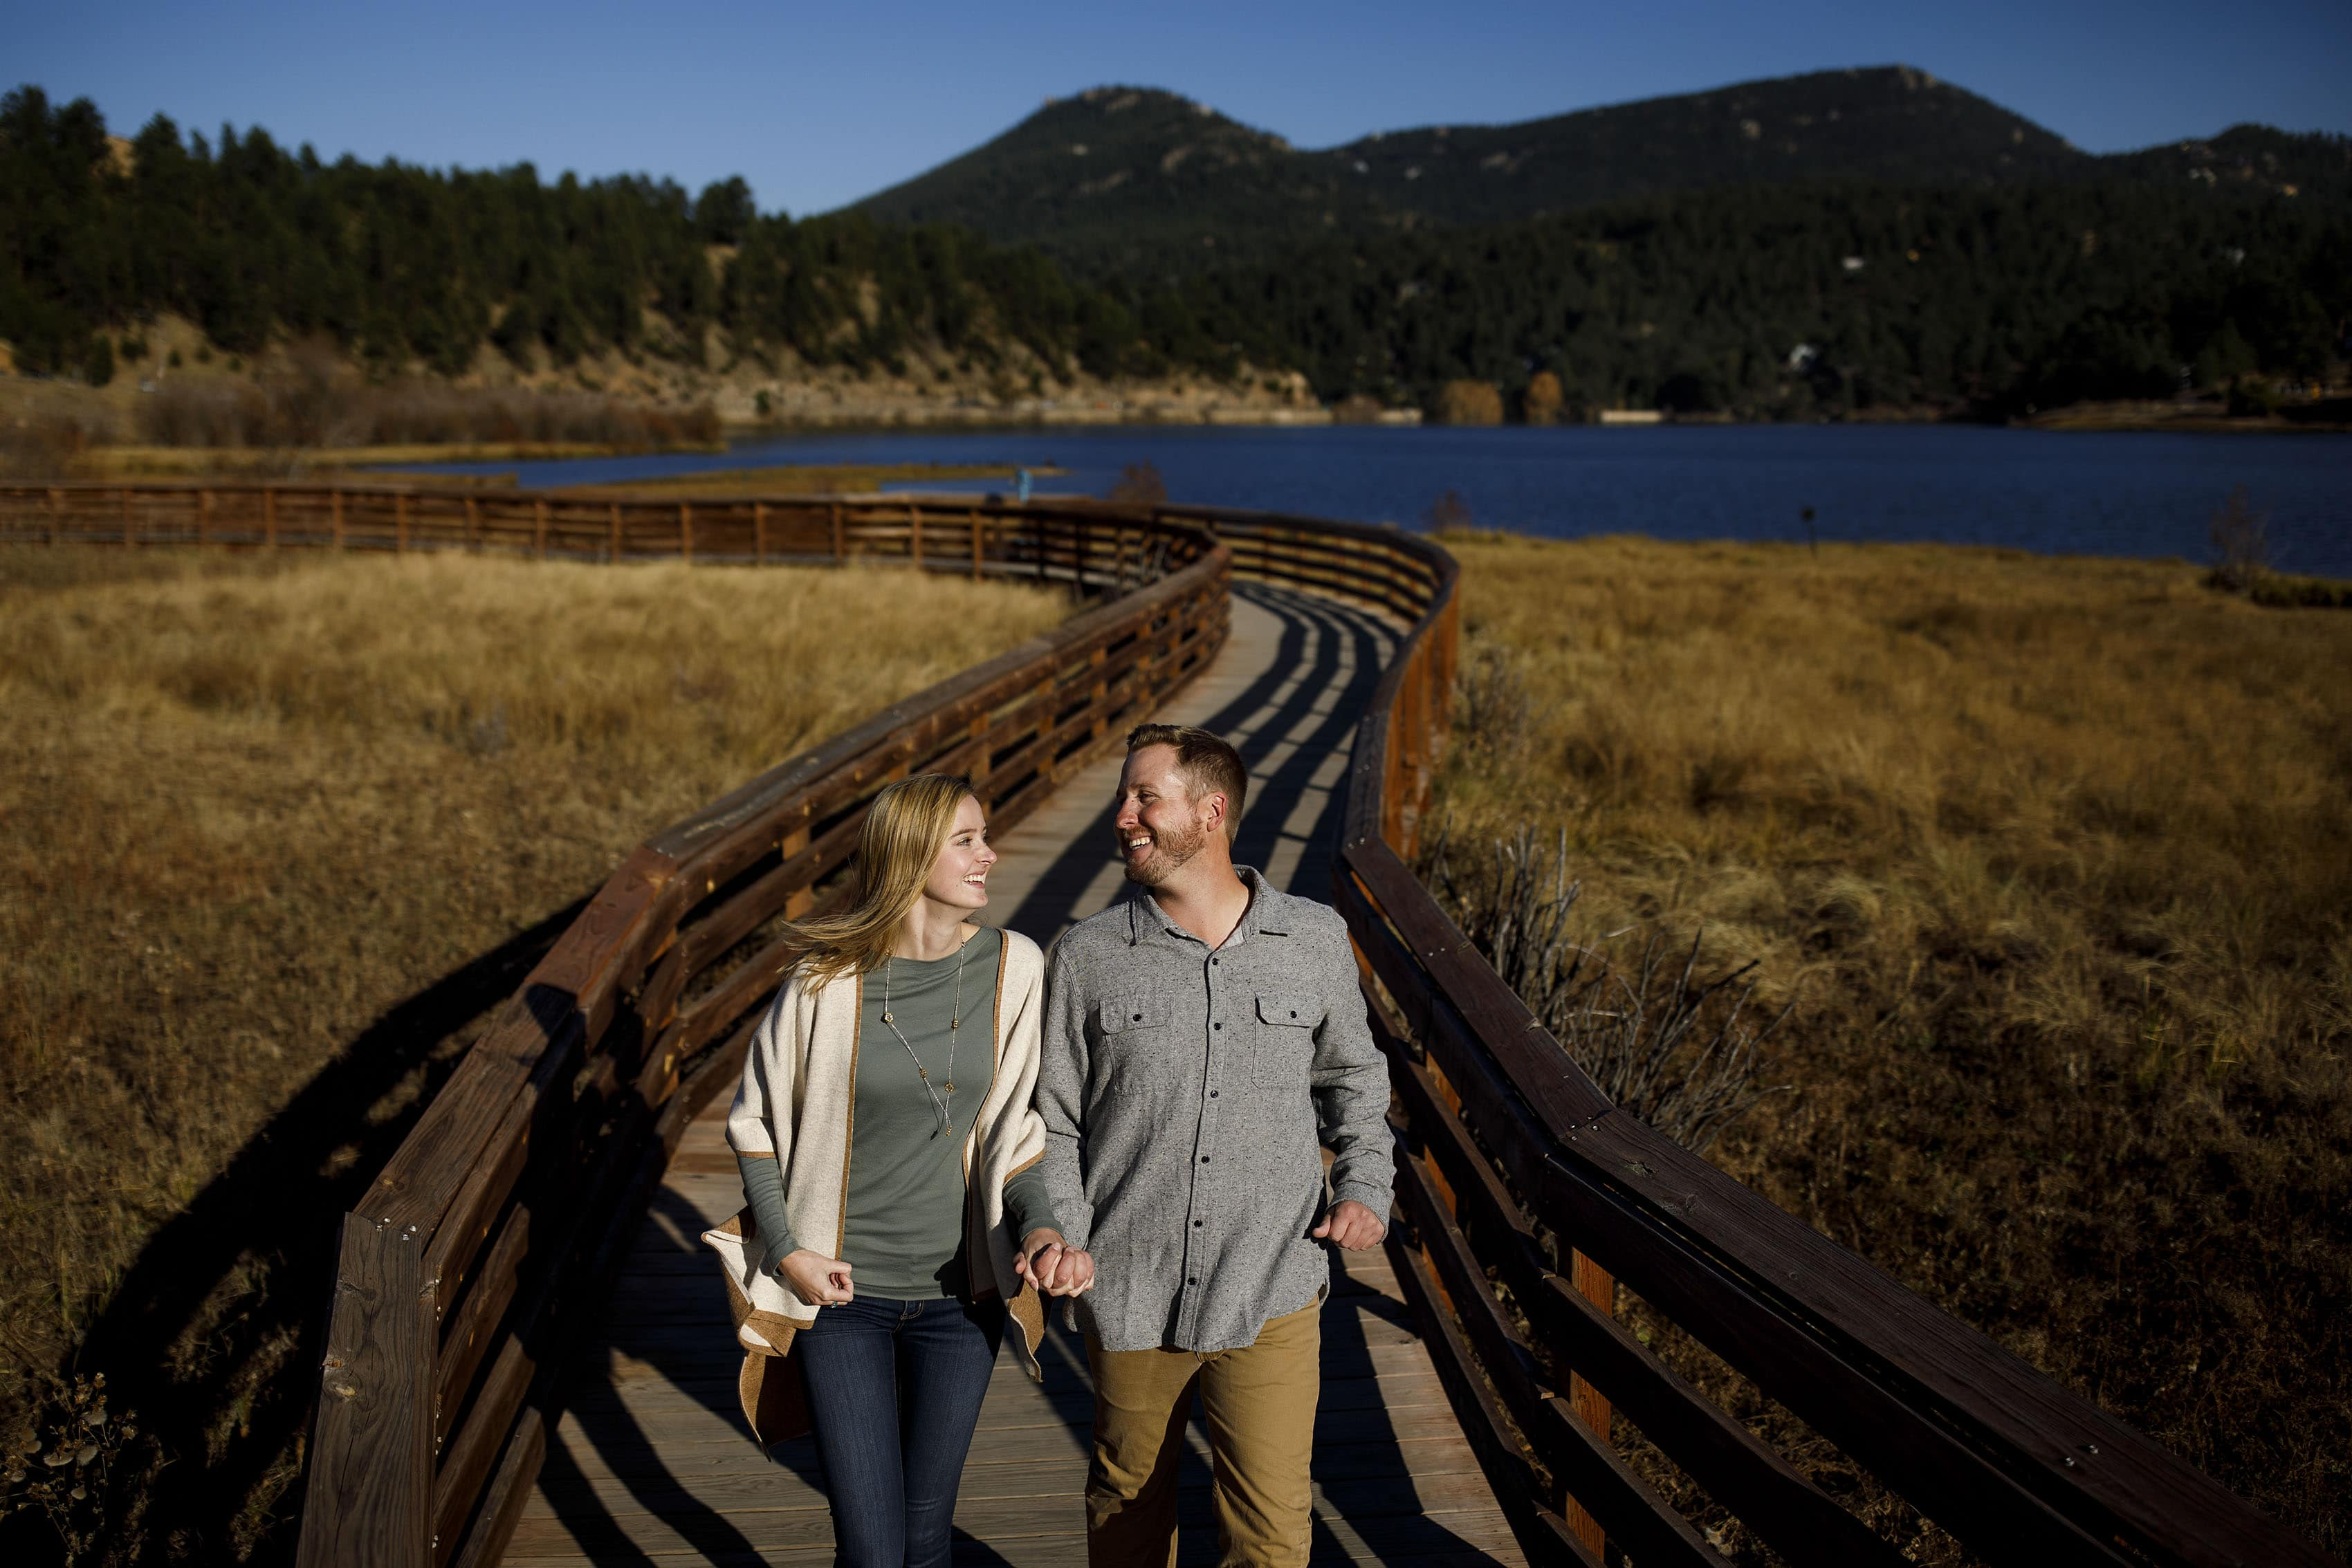 Jennifer and Stefan laugh together on the wooden path at Evergreen Lake during a fall day